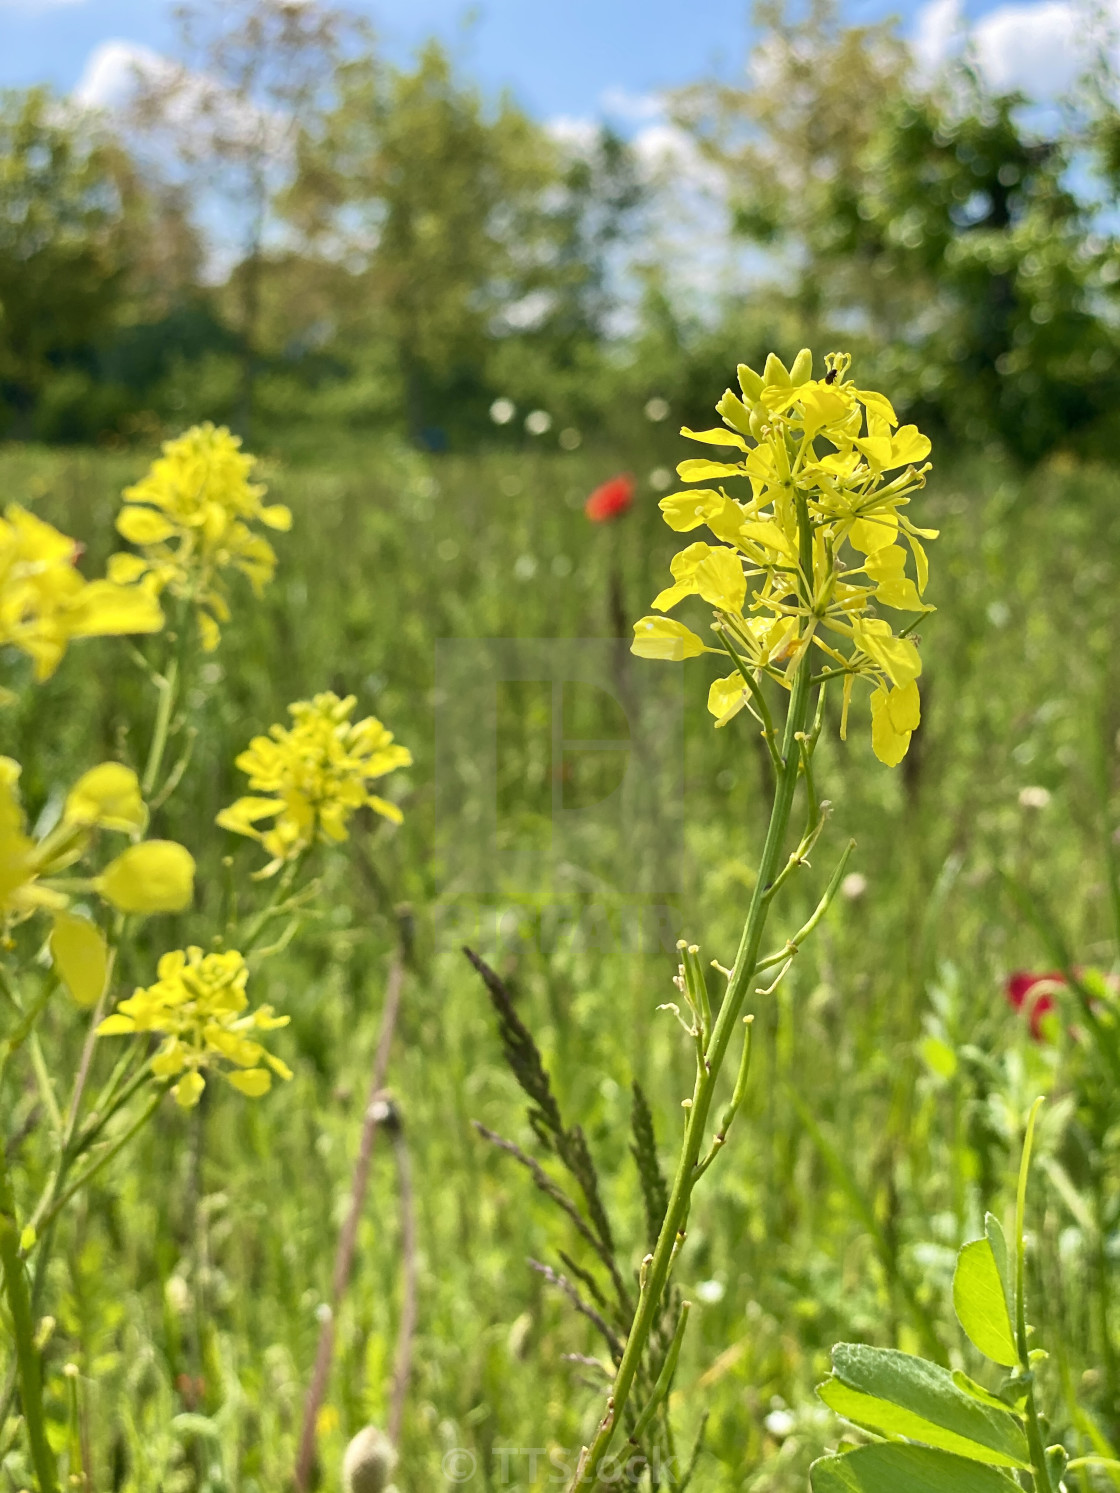 Delicate wild yellow flowers in the spring green grass meadow swaying in the wind on a sunny day.